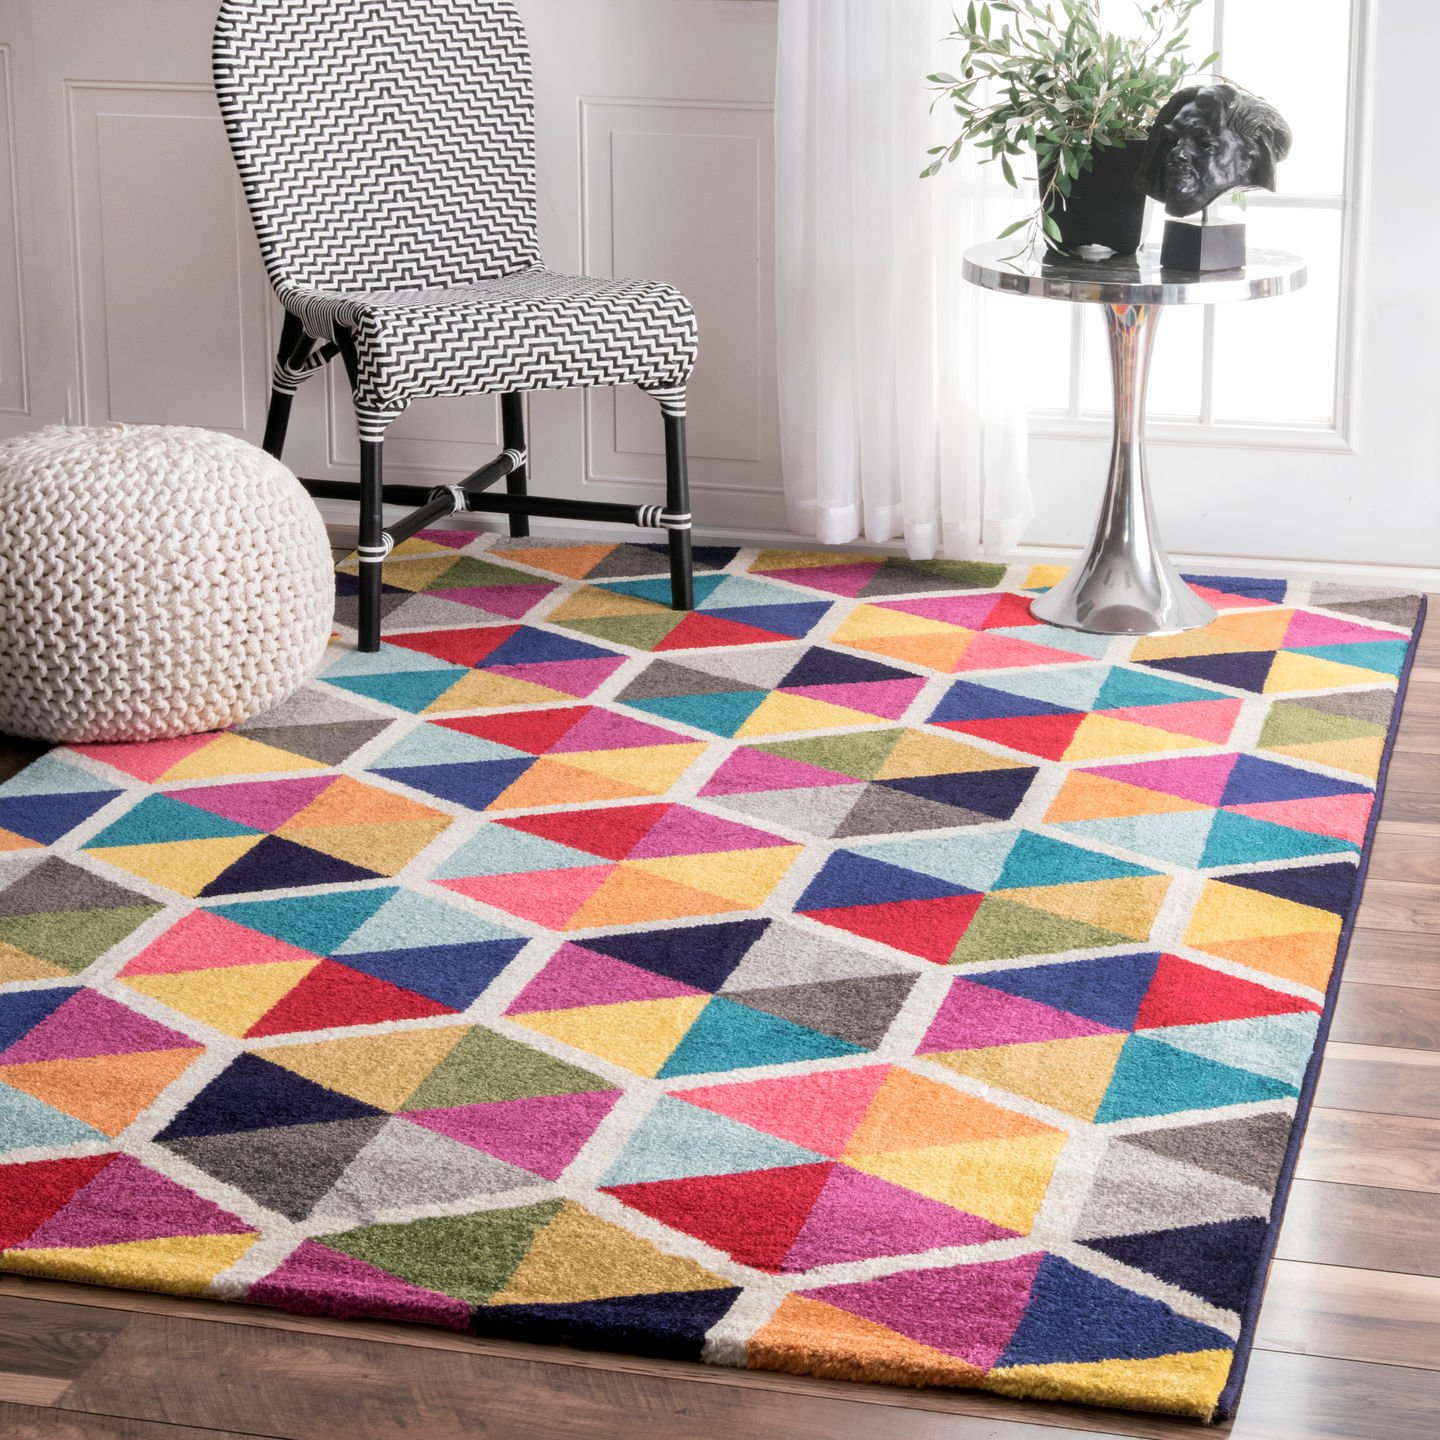 nuLOOM Maris Triangles Area Rug, 5 x 8 , Multi